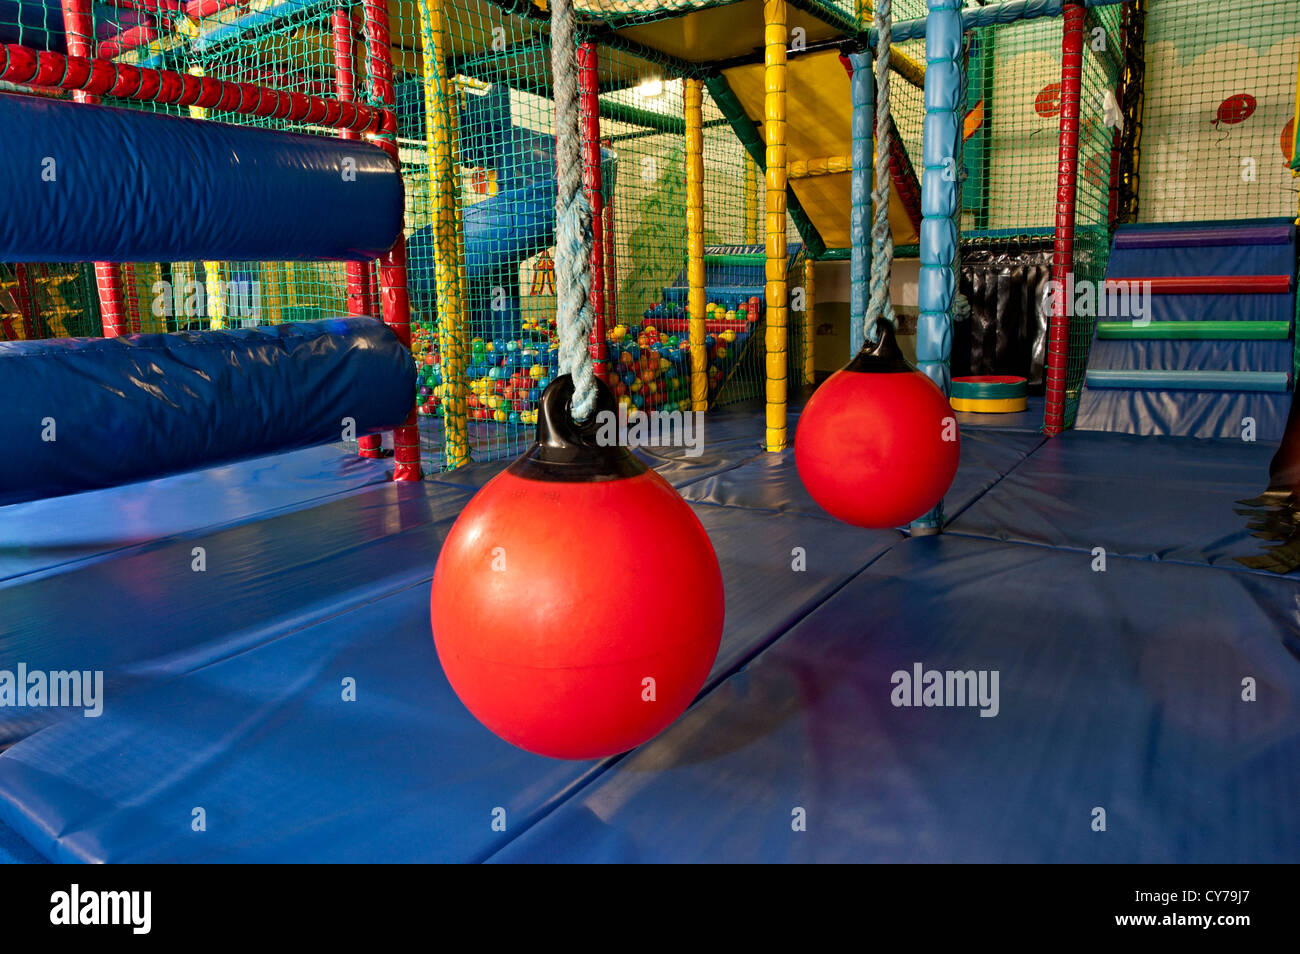 An Indoor Soft Play Center For Children In England Stock Photo